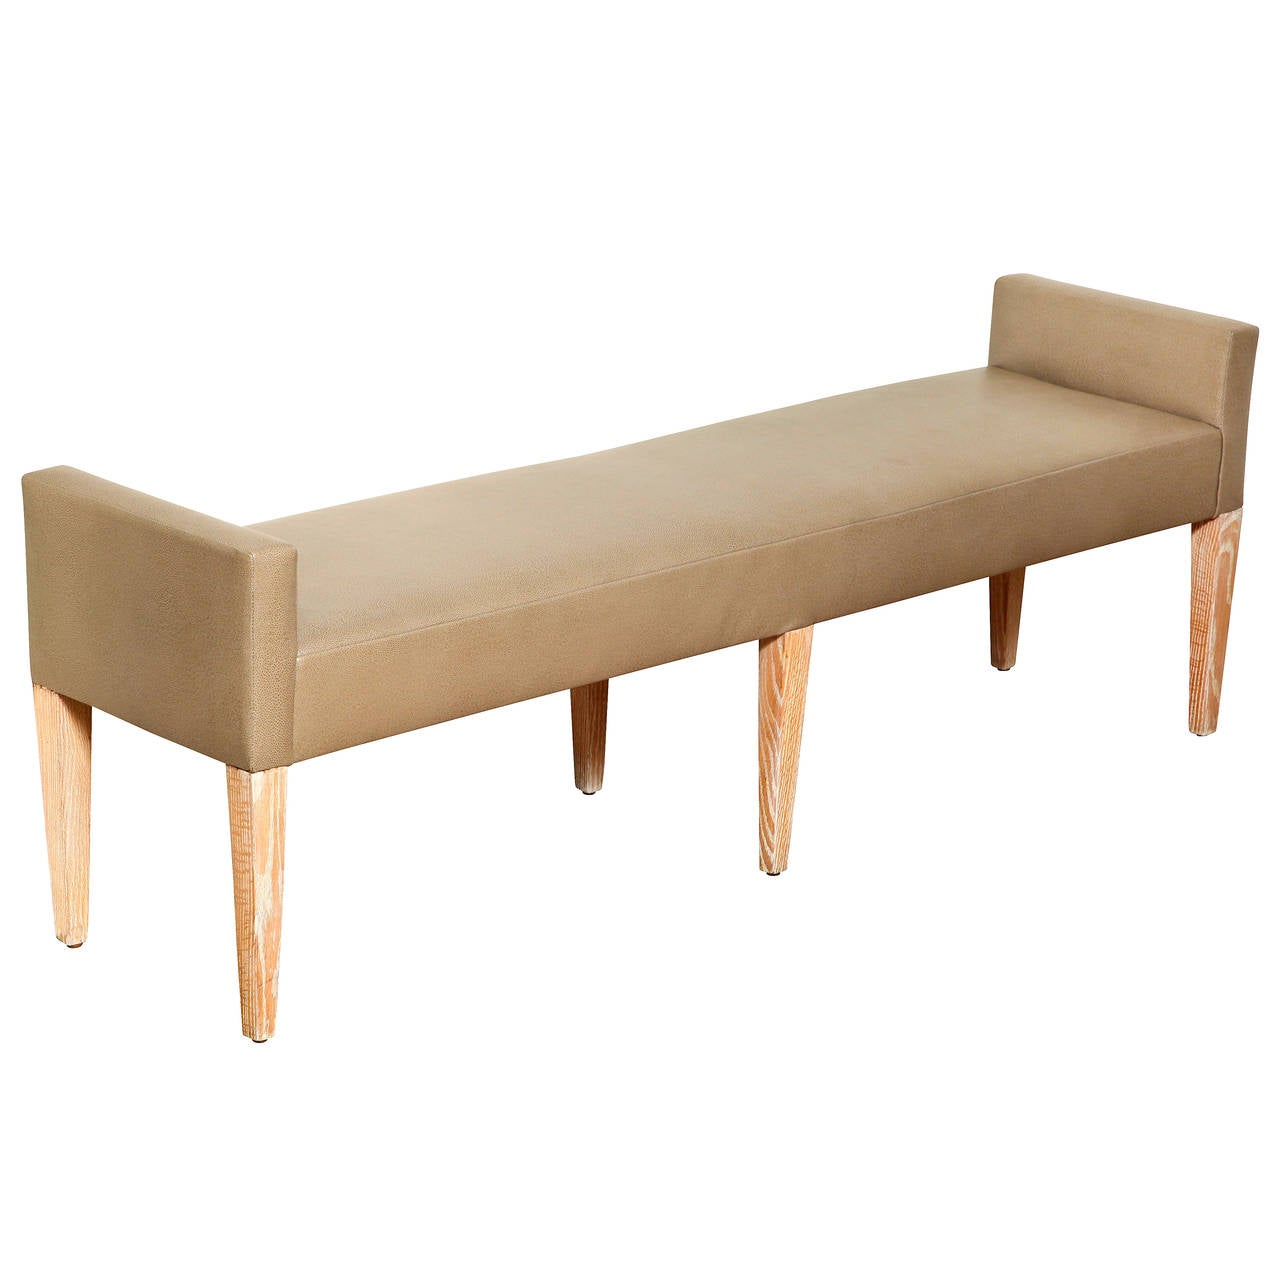 American Mid Century Narrow Bench For Sale At 1stdibs